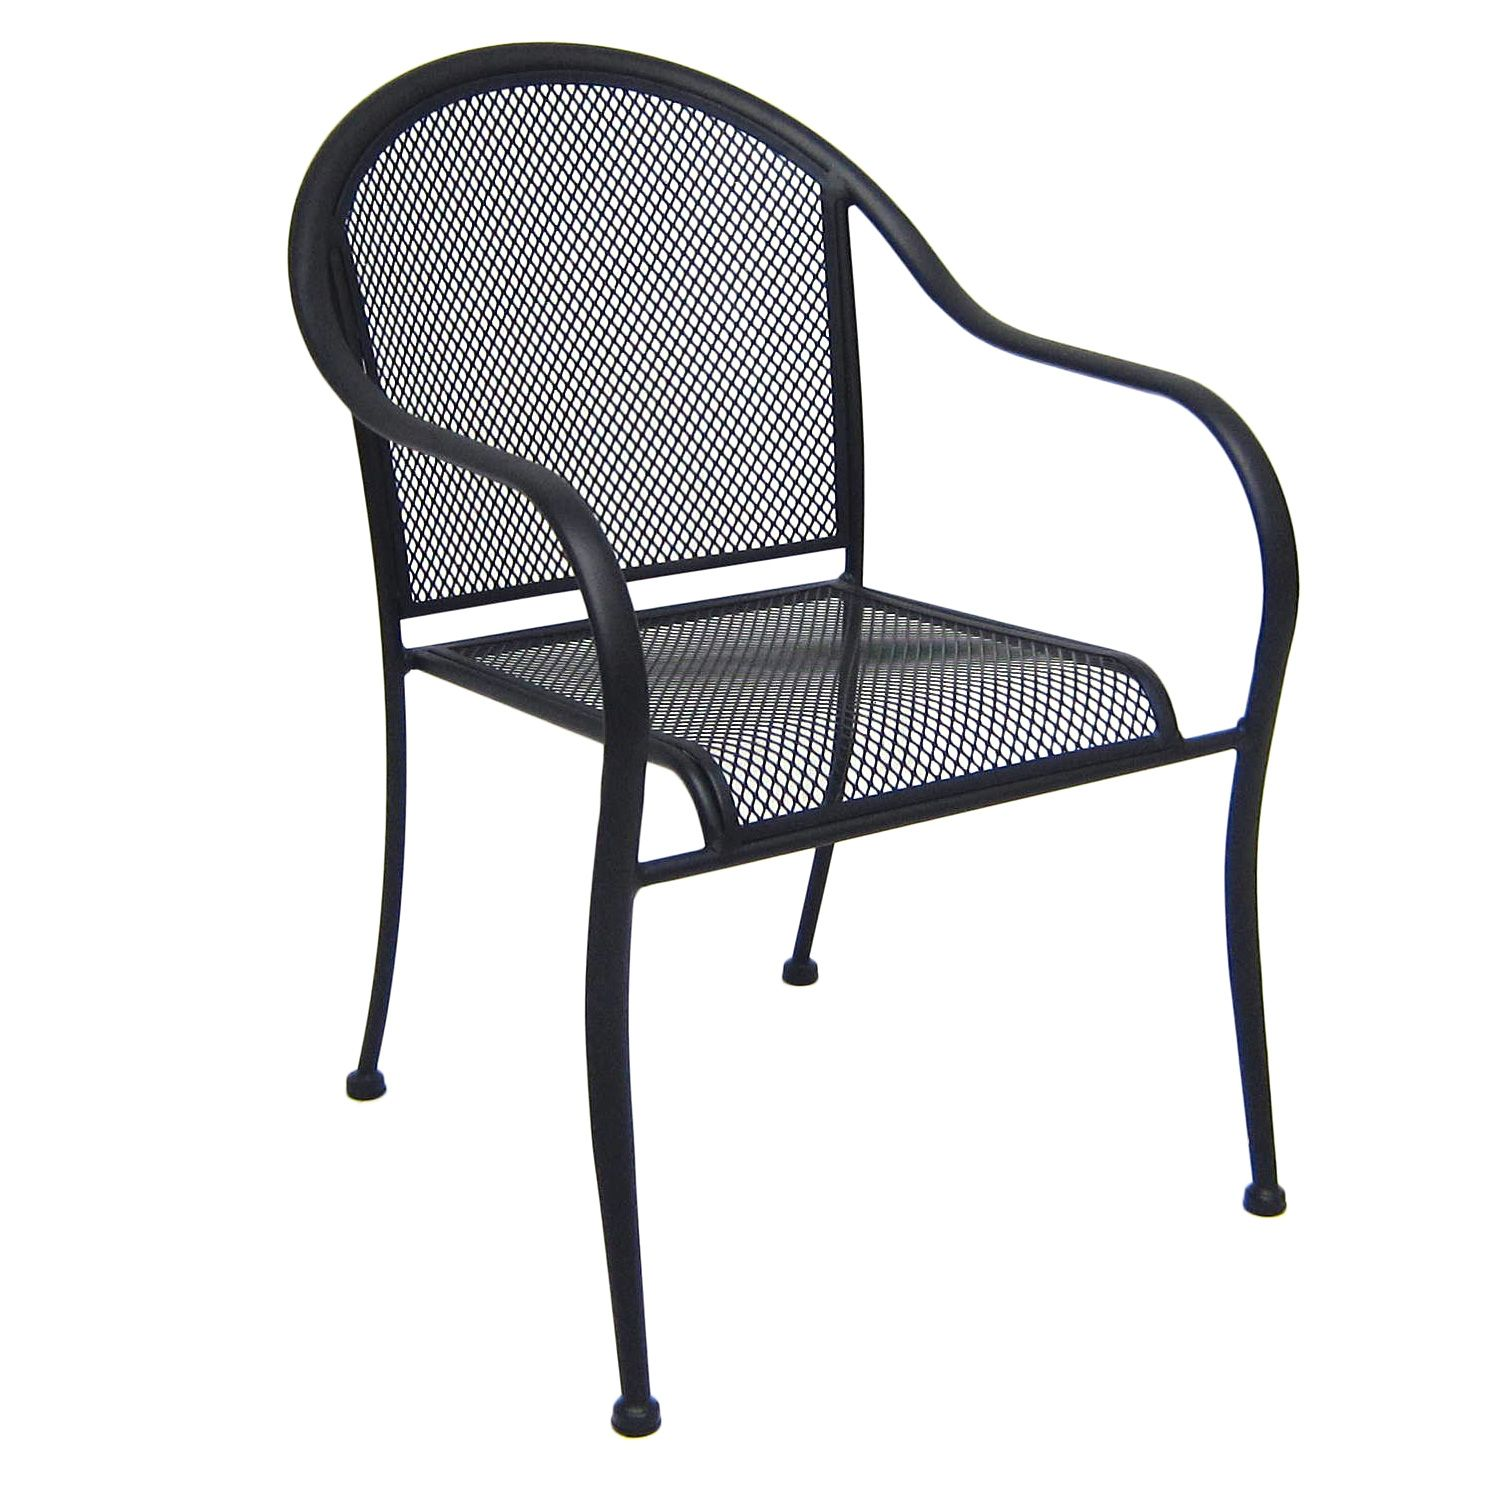 Wrought iron commercial bistro chair for Wrought iron cafe chairs